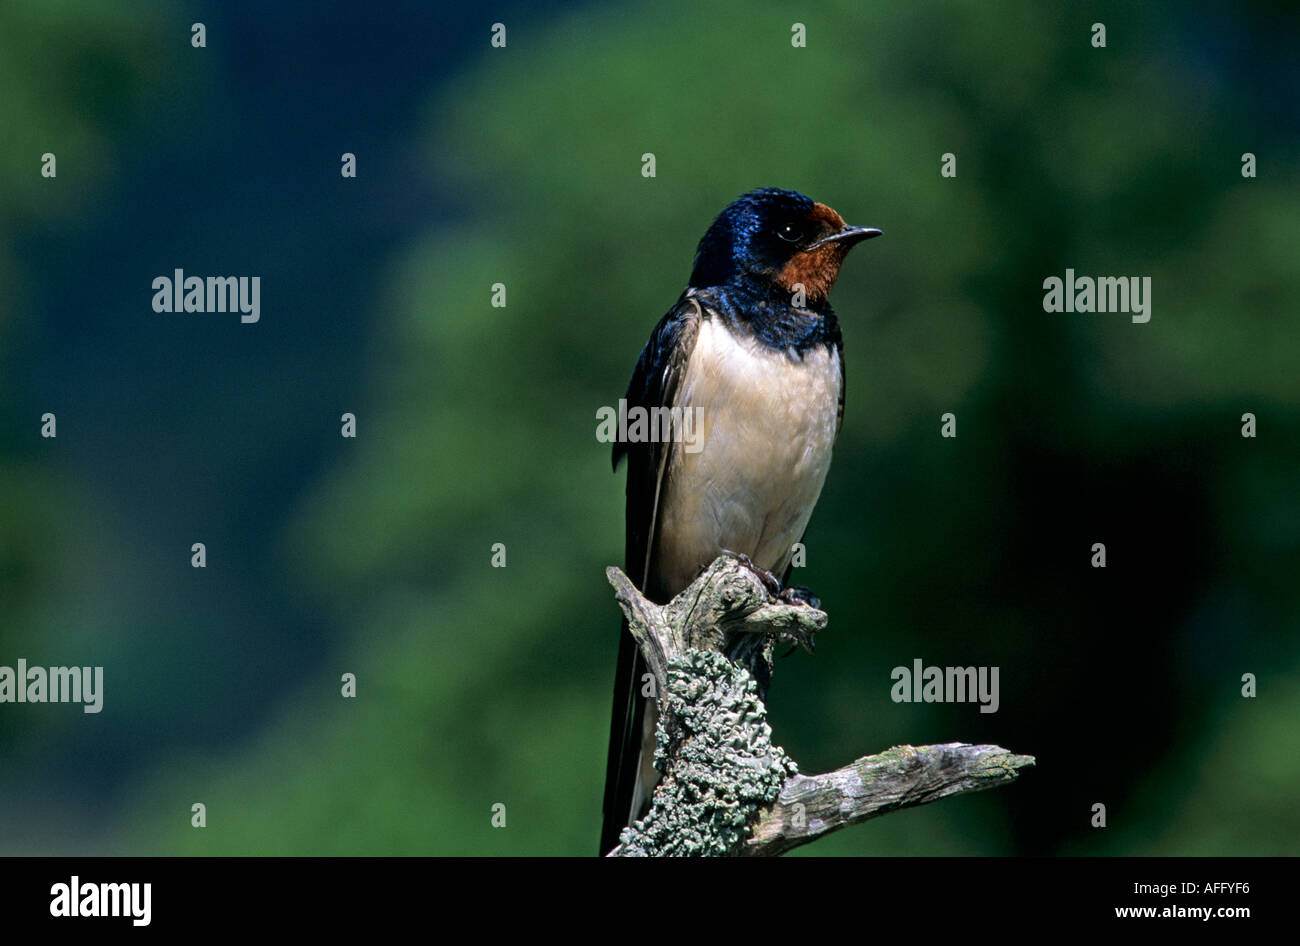 Swallow perched on twig, british summer migrant, Scotland, UK - Stock Image